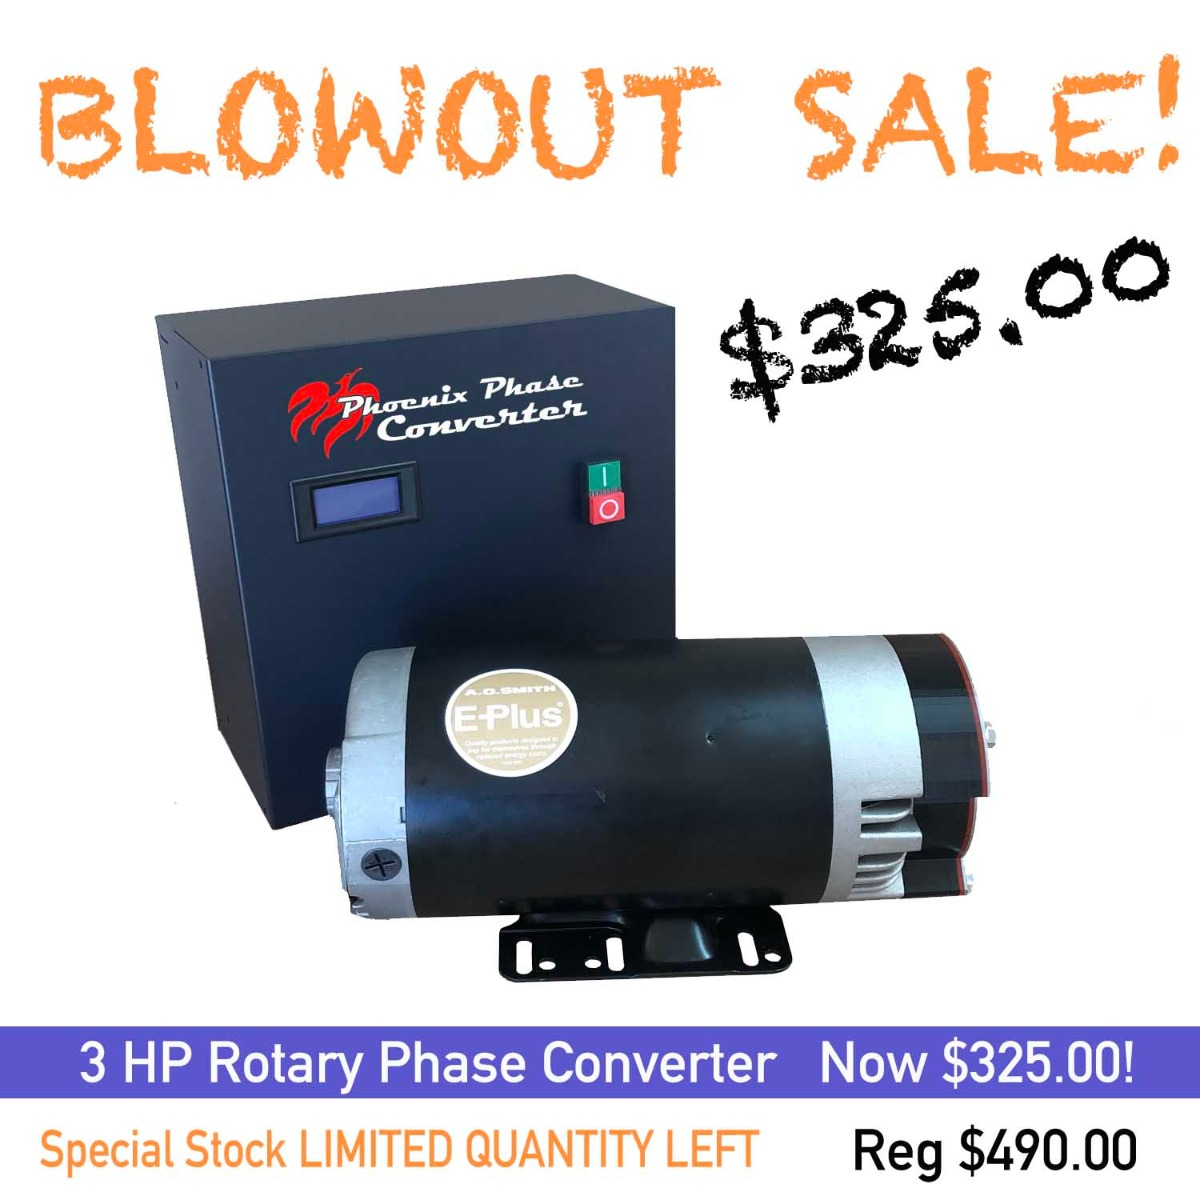 Blowout Sale: $325 3 HP Rotary Phase Converter Sale